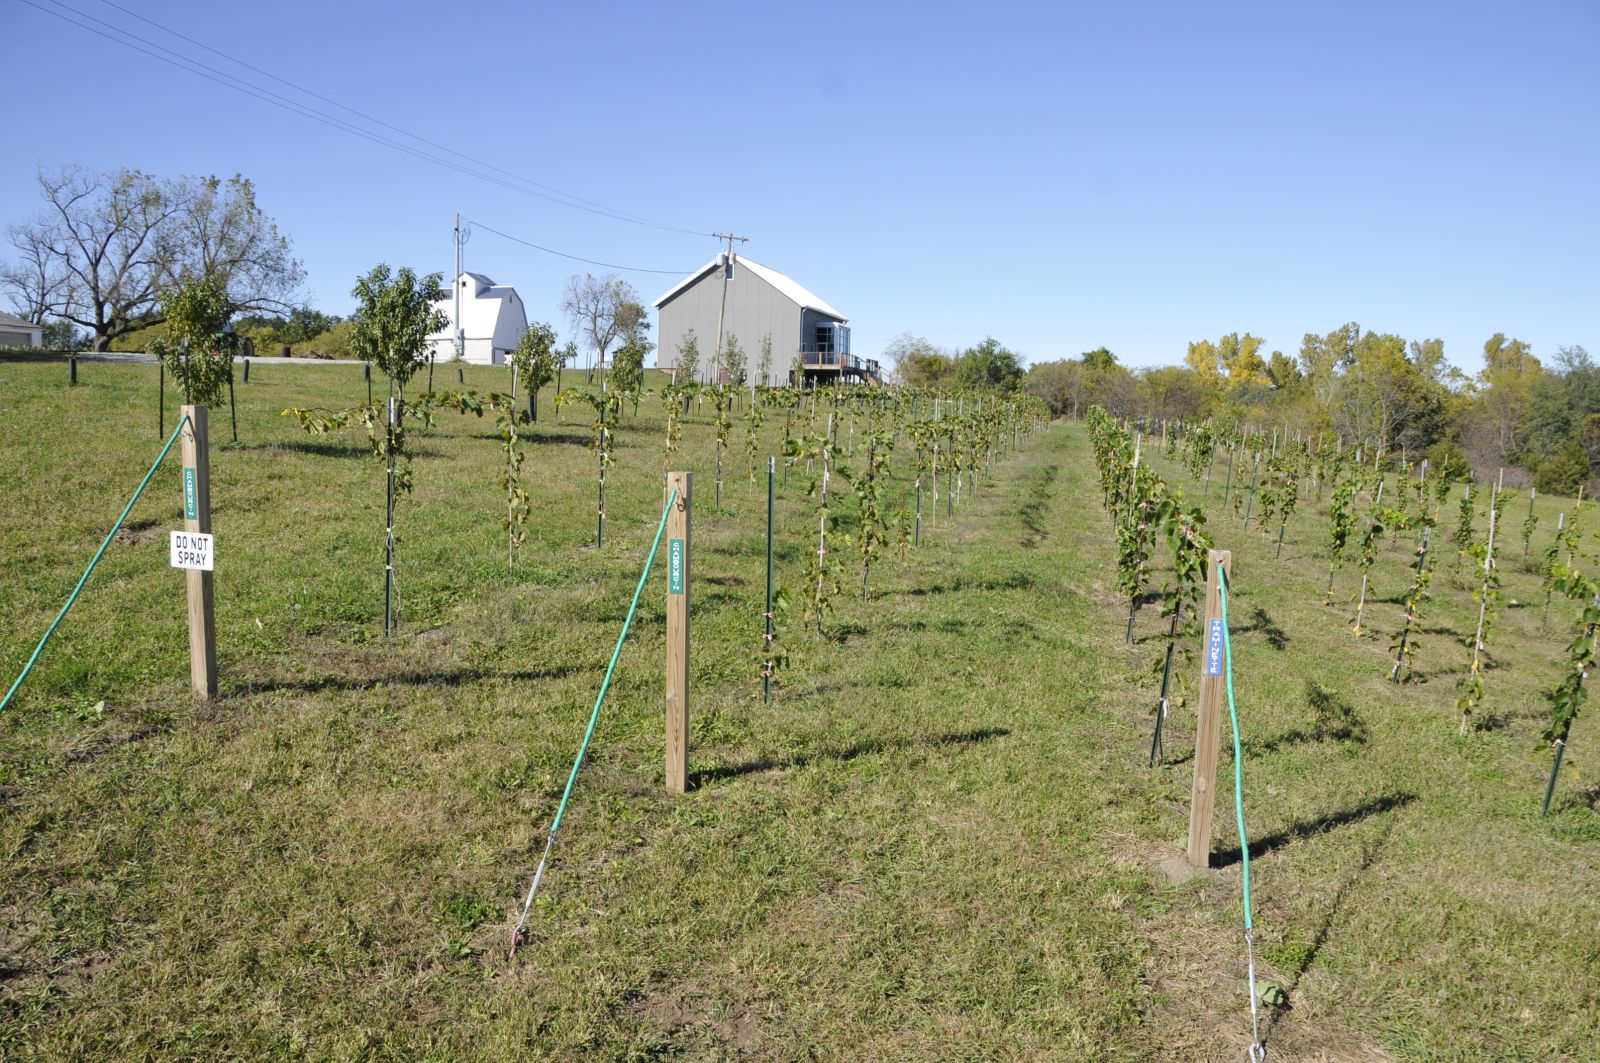 Vineyard, orchard, vegetable gardens